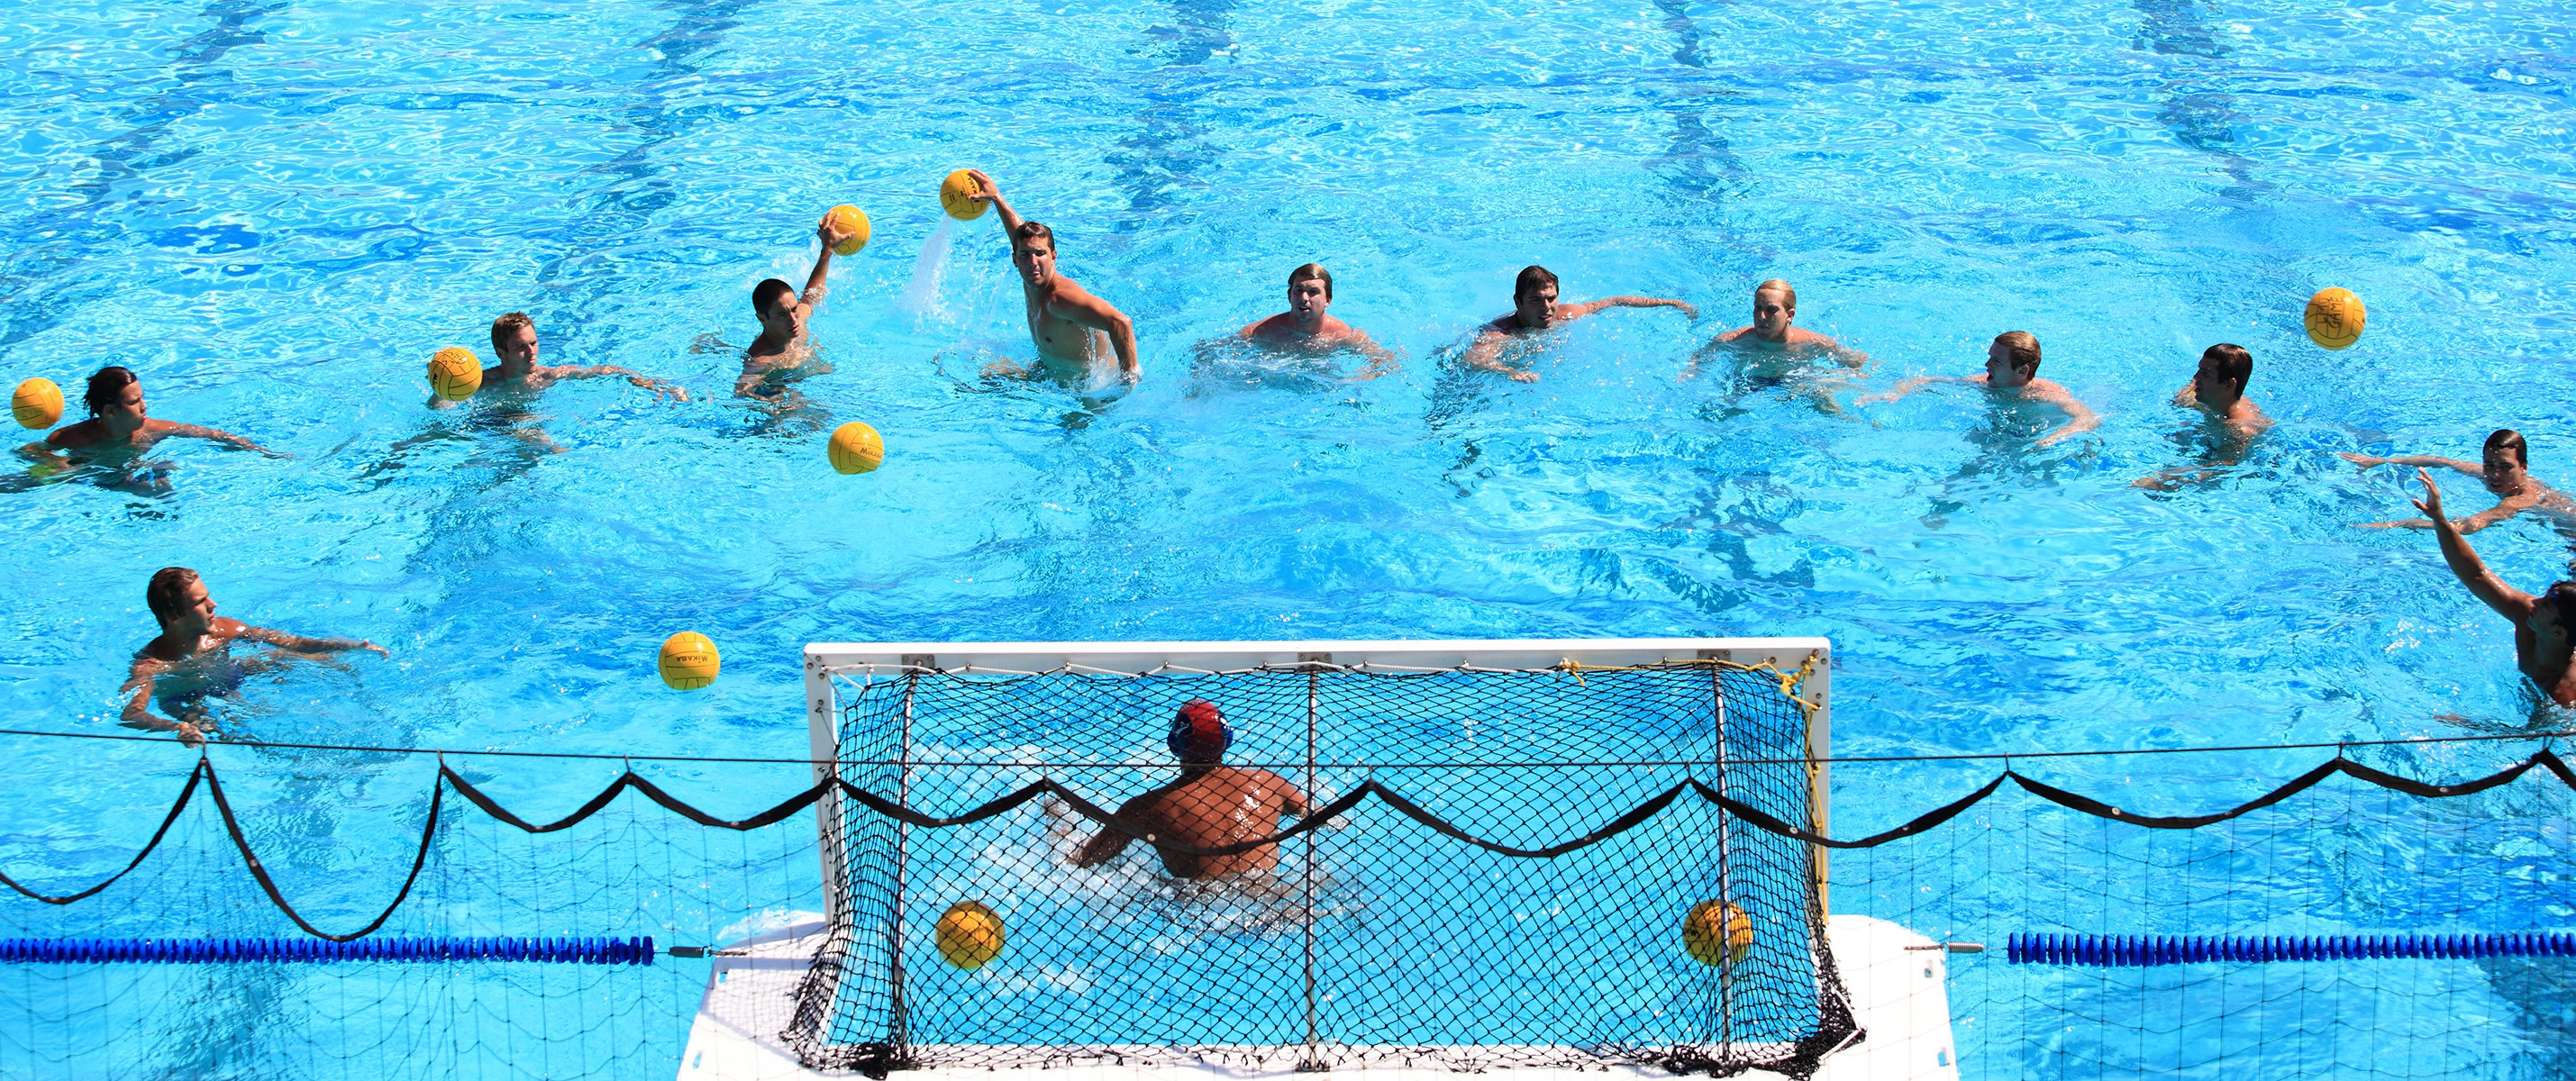 Water polo team